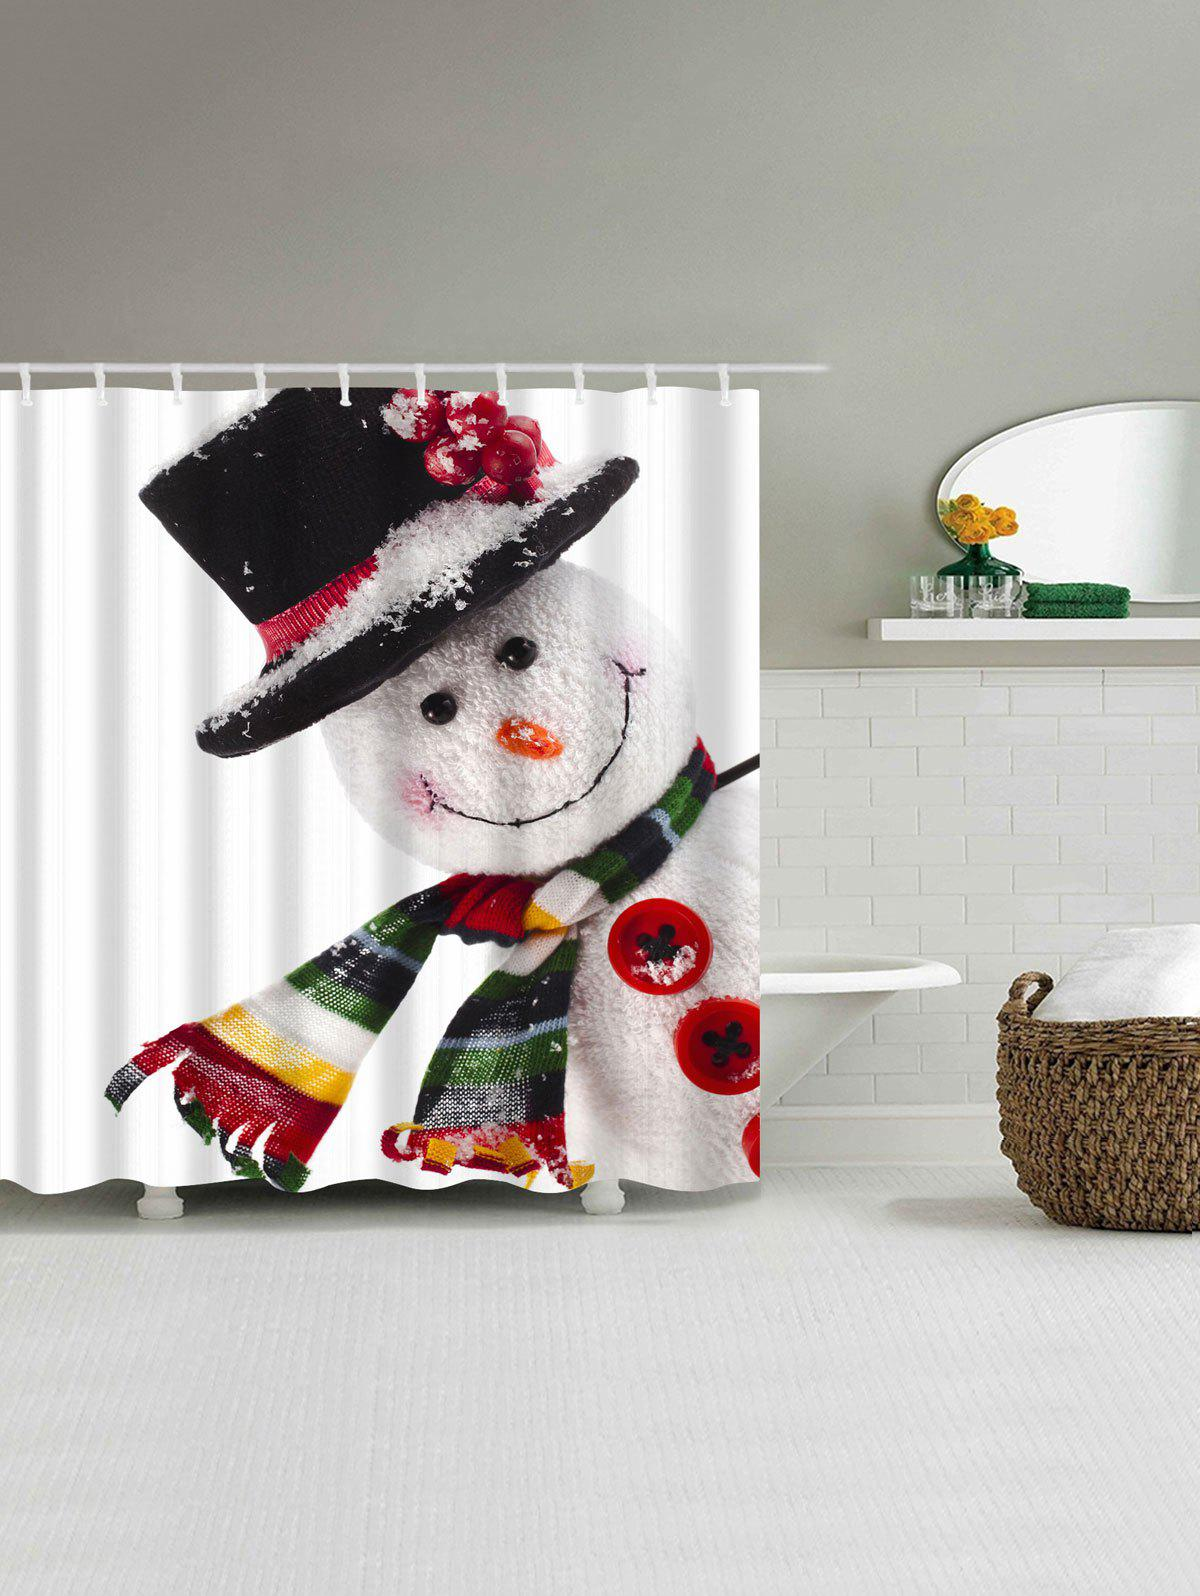 Polyester Waterproof Christmas Snowman Shower Curtain - WHITE W59 INCH * L71 INCH